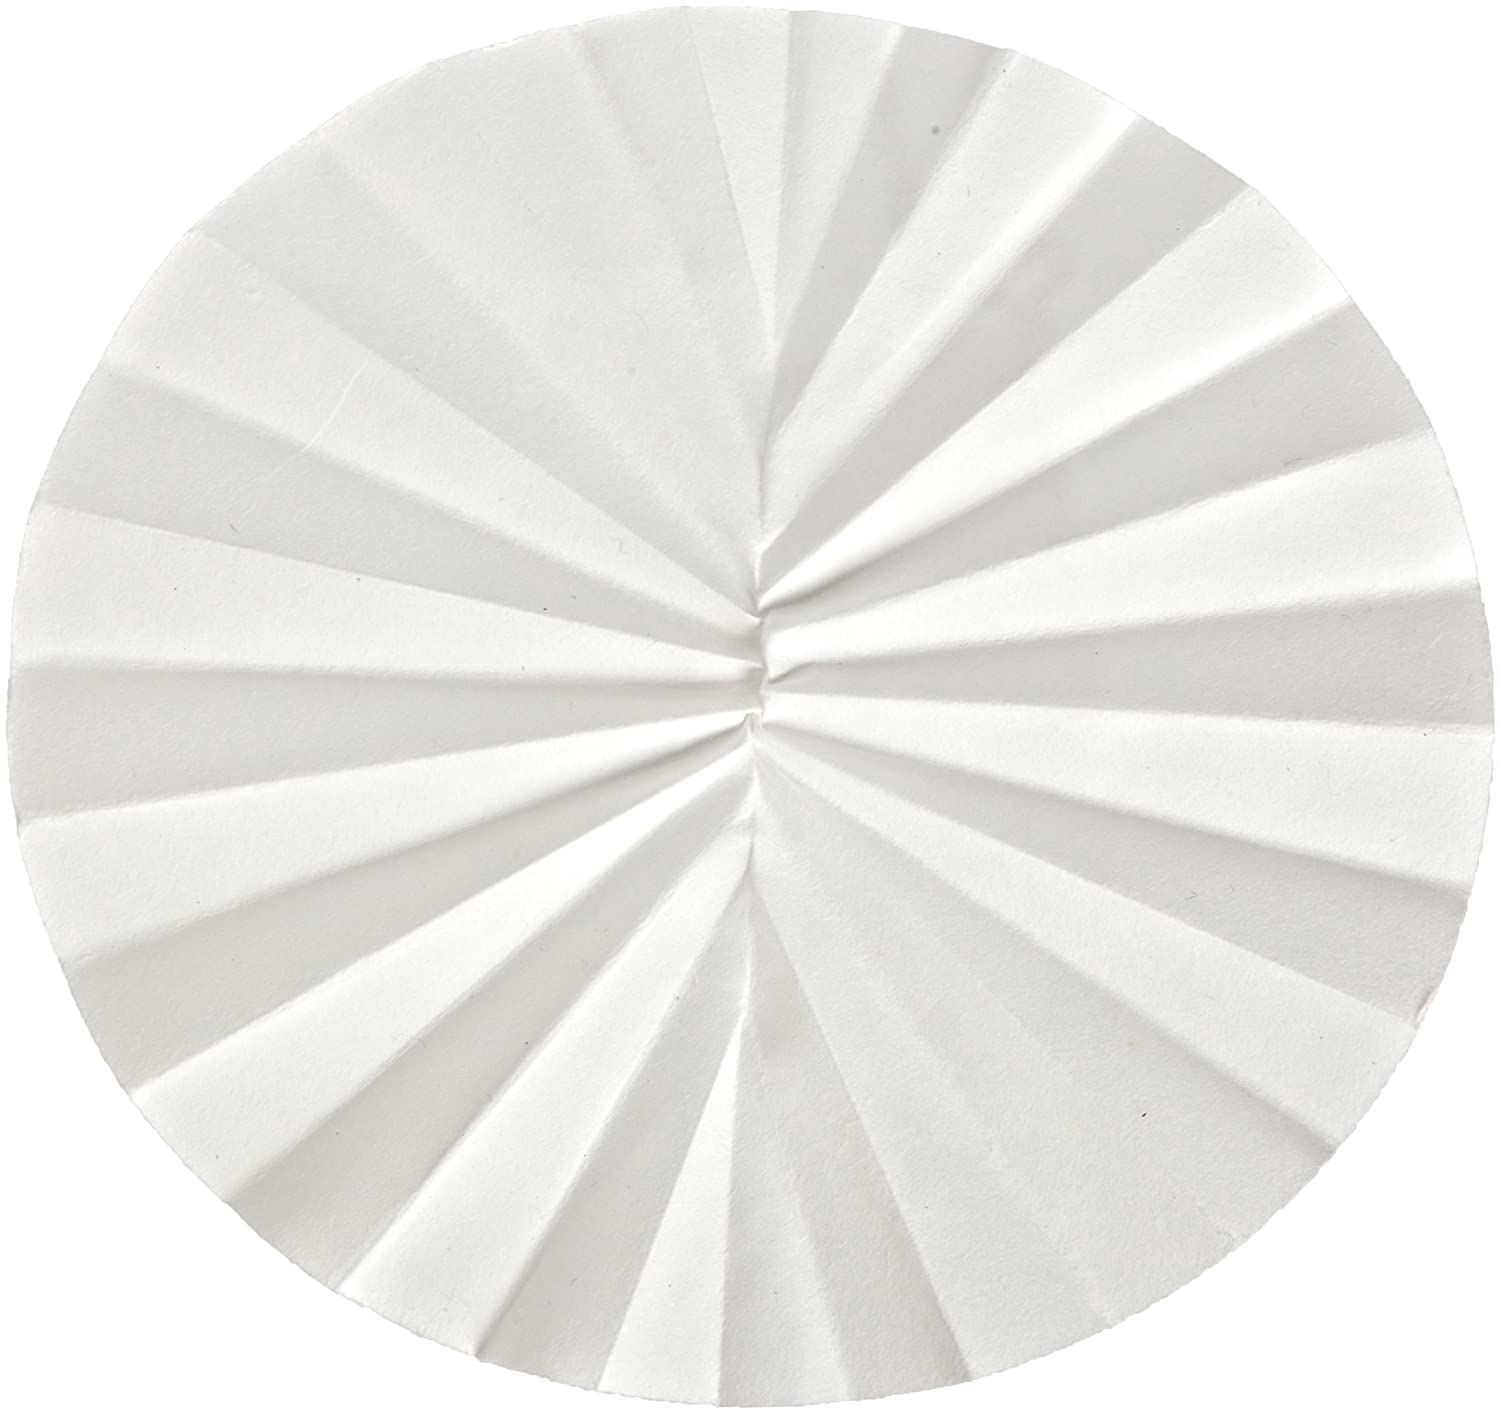 Whatman 10311641 Quantitative Folded Filter Paper 4-7 Micron, Grade 595-1/2, 70mm Diameter (Pack of 100) GE Healthcare WHA-10311641